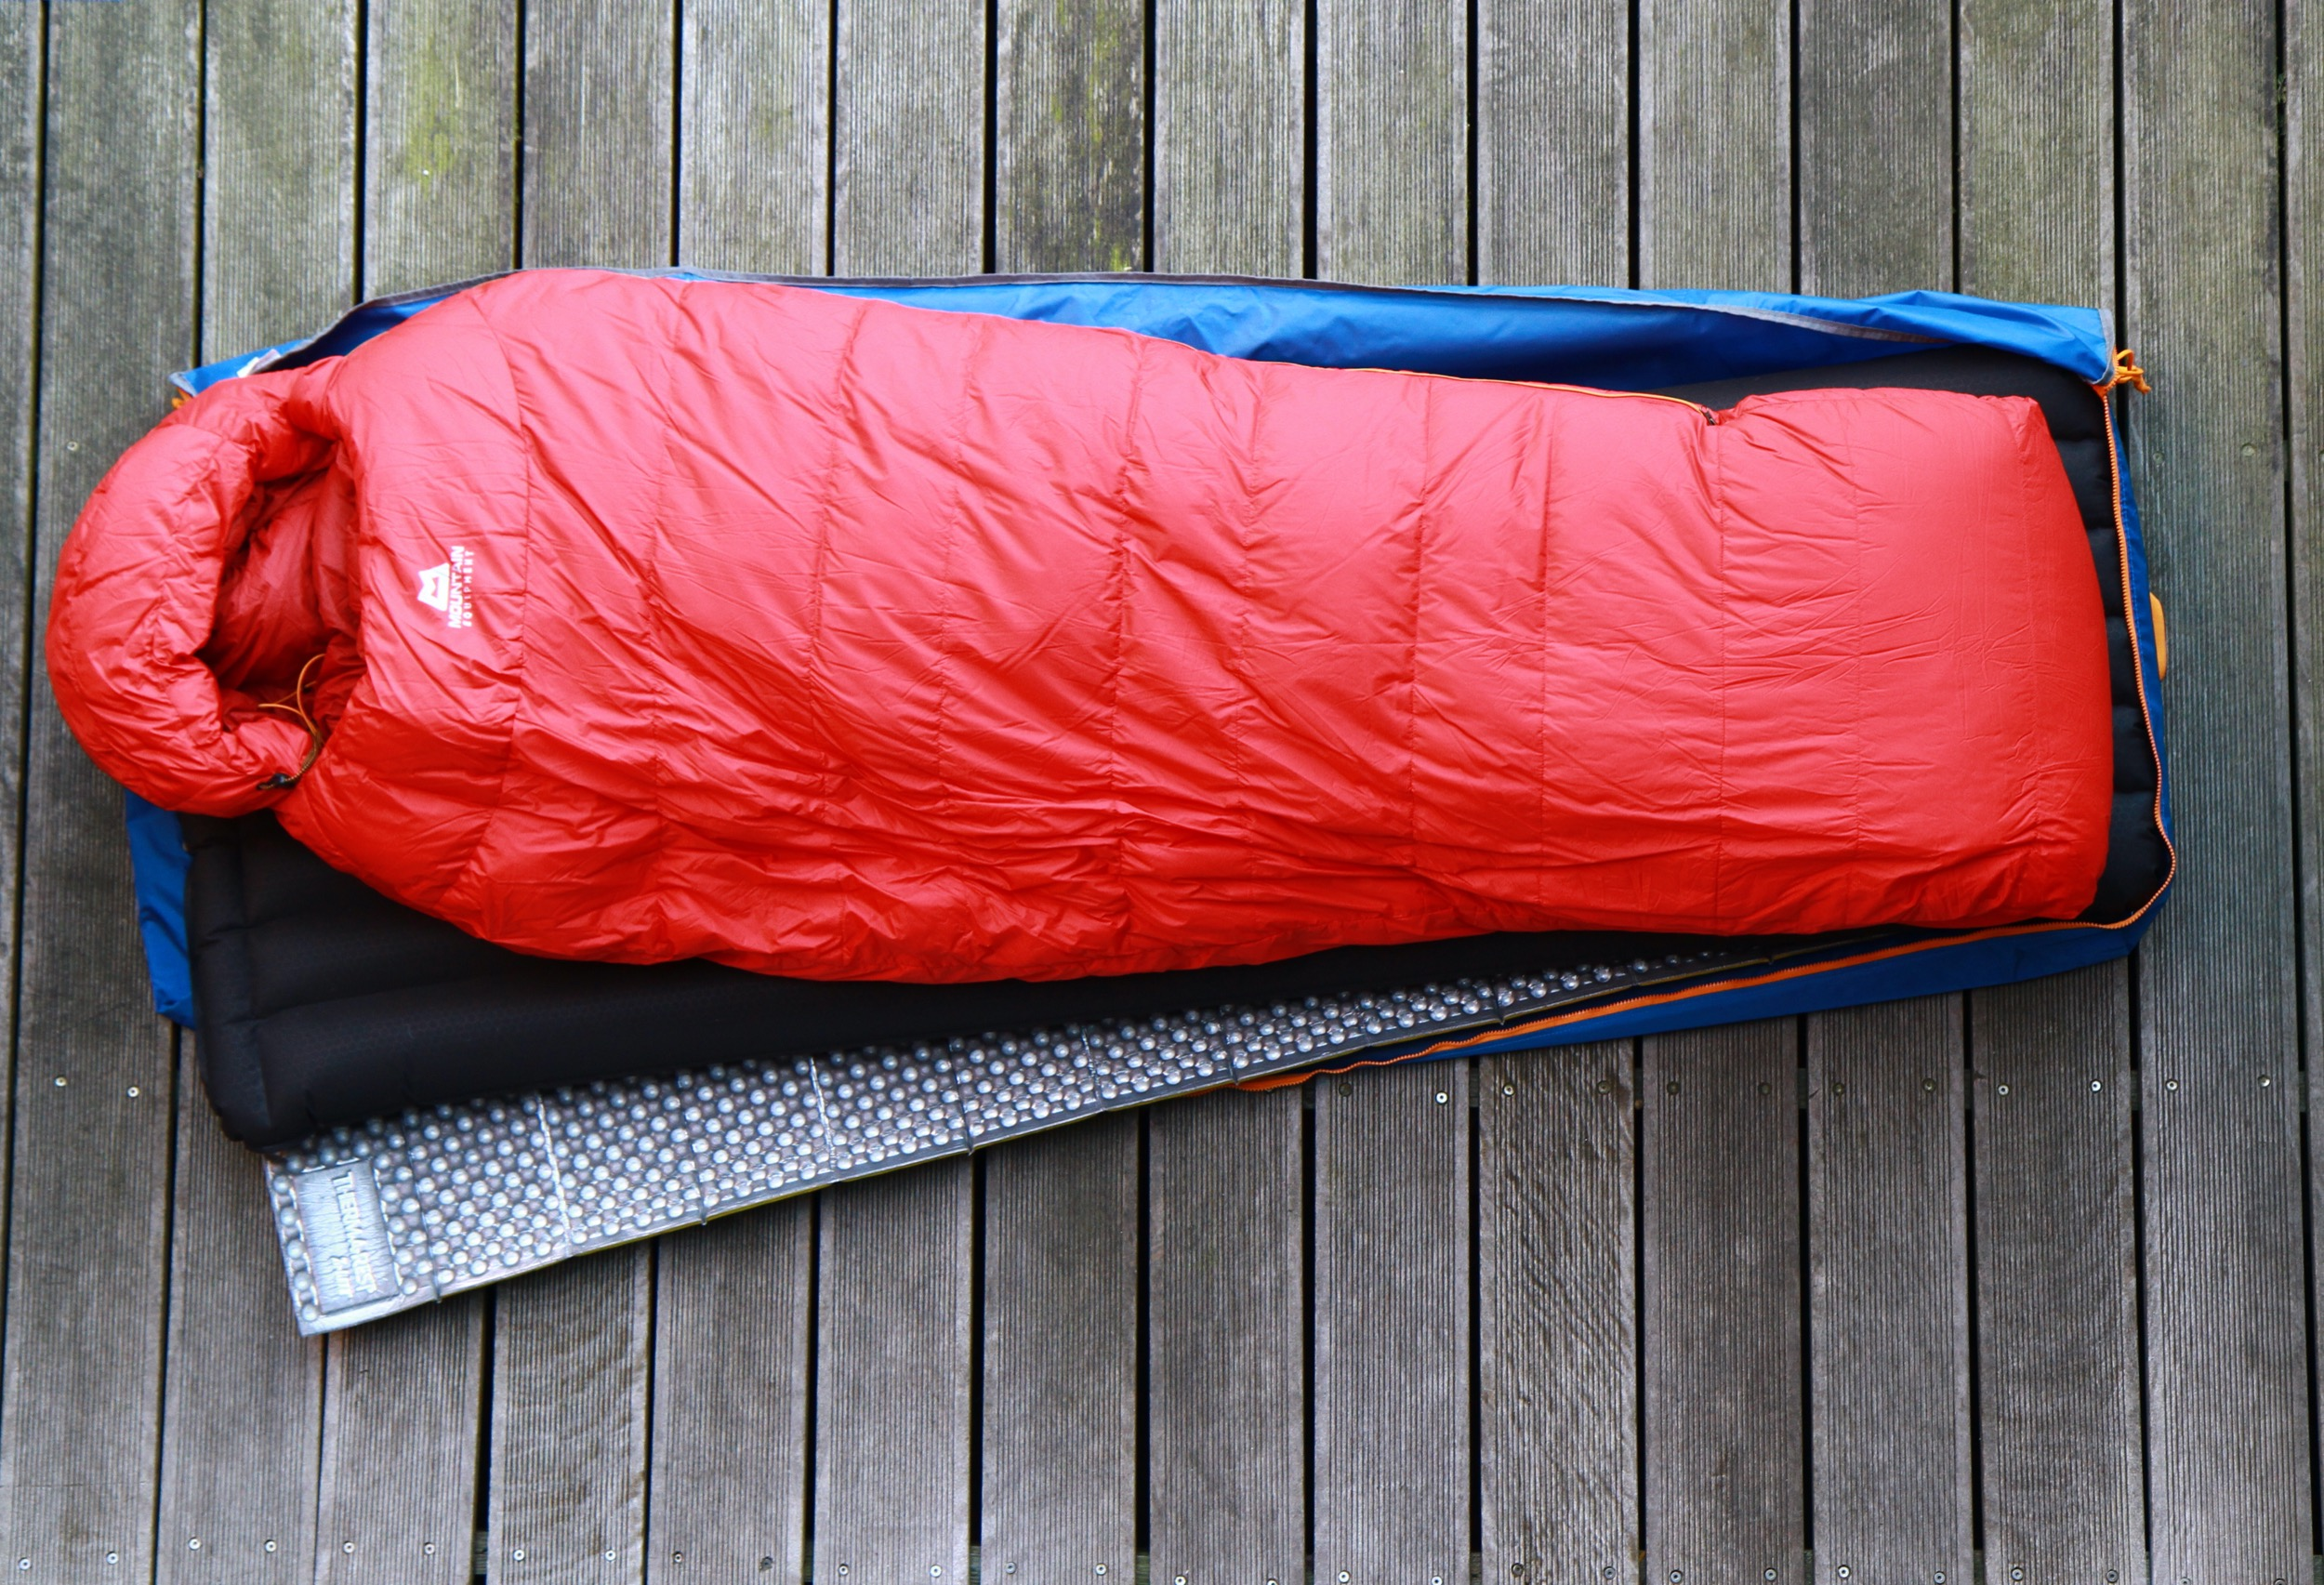 Piteraq Arctic Bedding HD Thermarest Z-Lite SOL Exped Downmat XP9 m. Schnozzel Pump Bag UL M Mountain Equipment Glacier Expedition